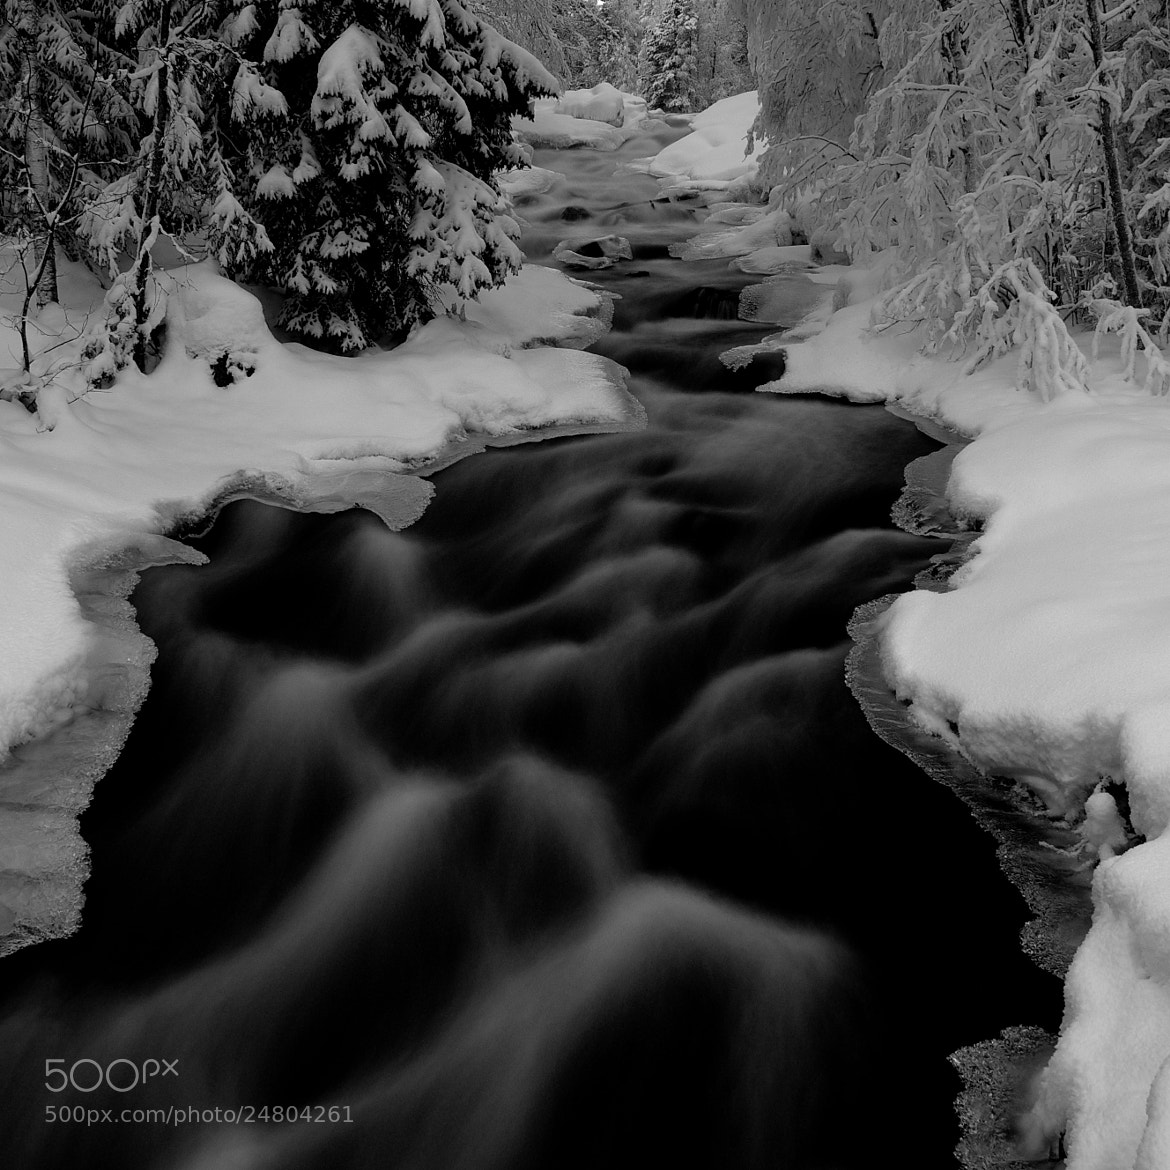 Photograph Black water by erik lind on 500px